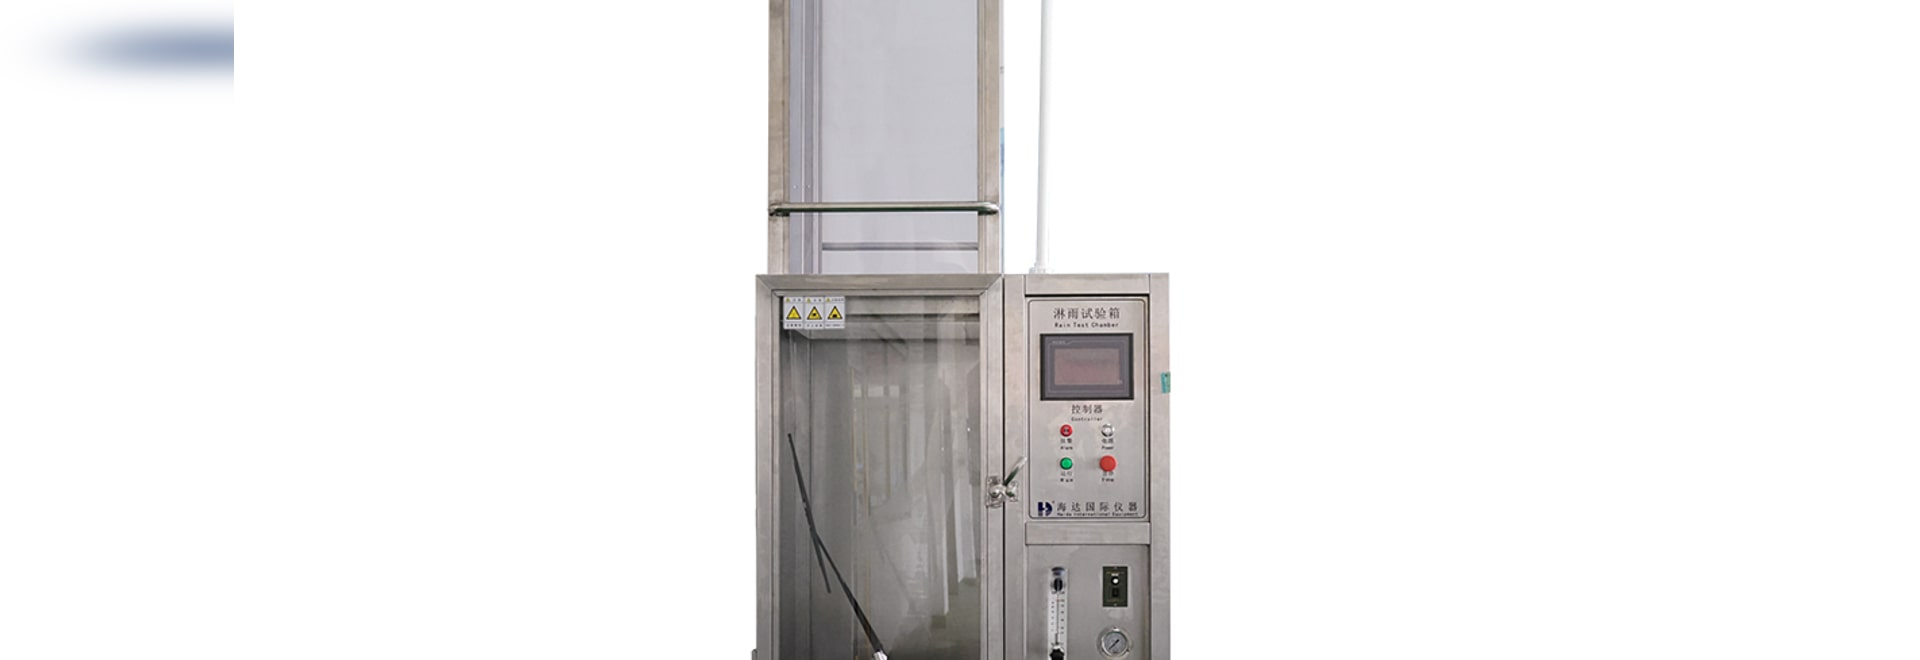 WATER SHOWER TEST CHAMBER for IP GRADE IPX5 and IPX6